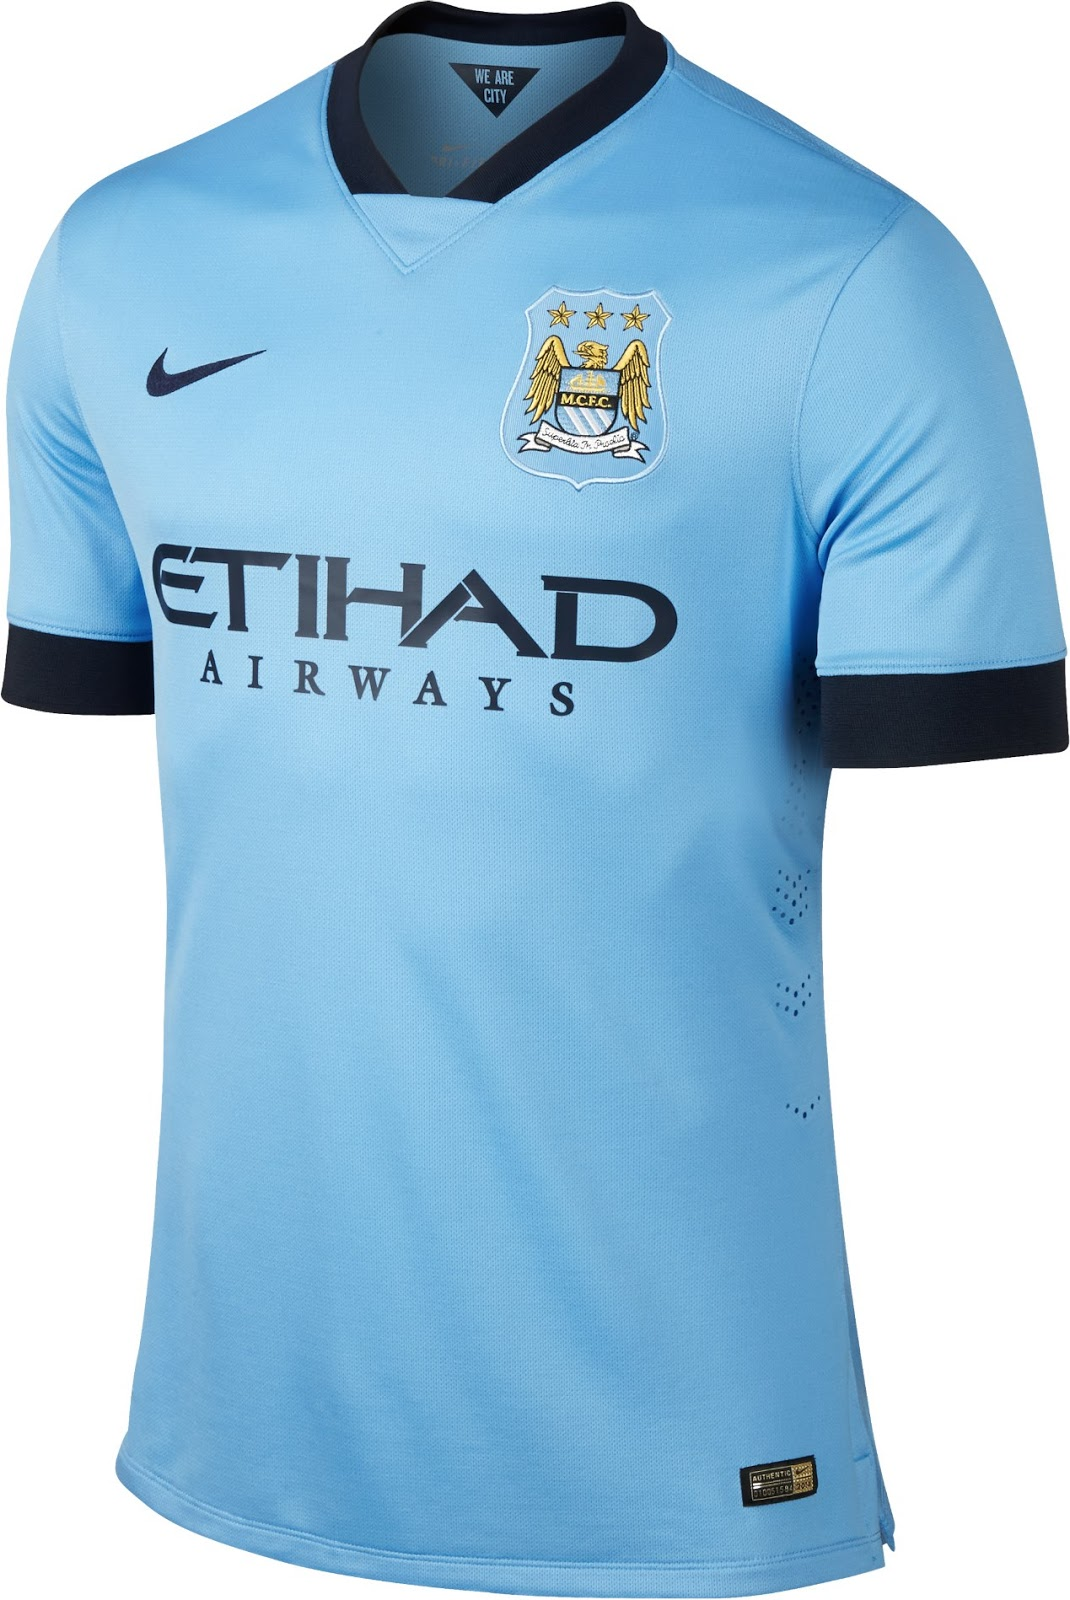 Footy News: NEW MANCHESTER CITY 14-15 KITS